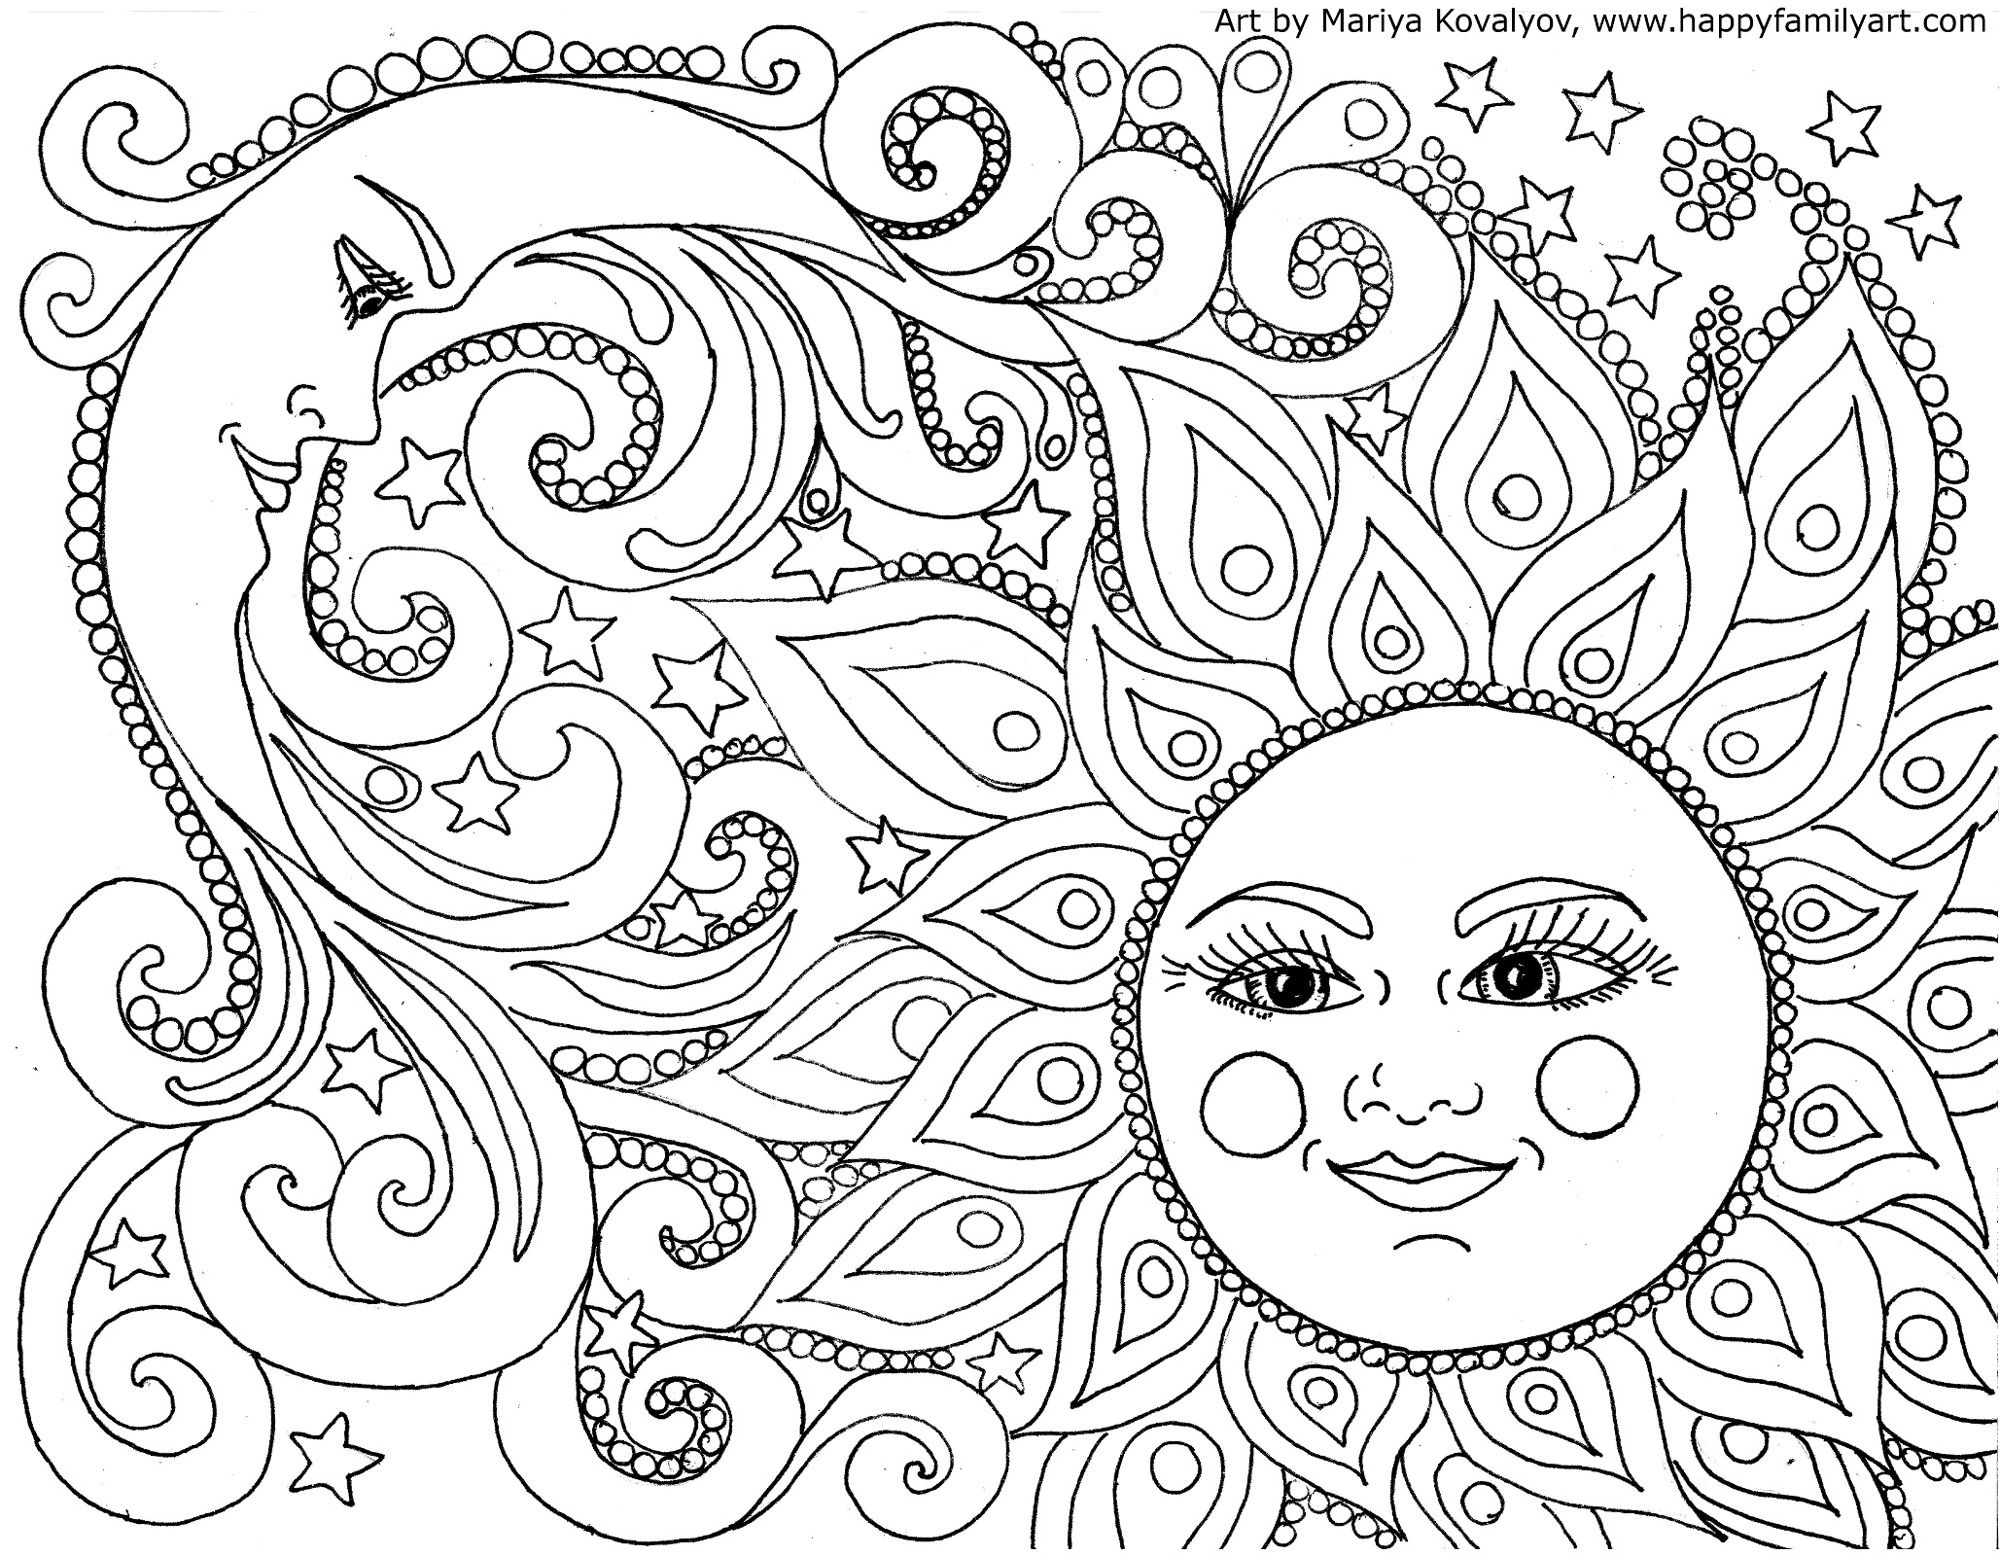 i made many great fun and original coloring pages color your heart out - Fun Color Sheets